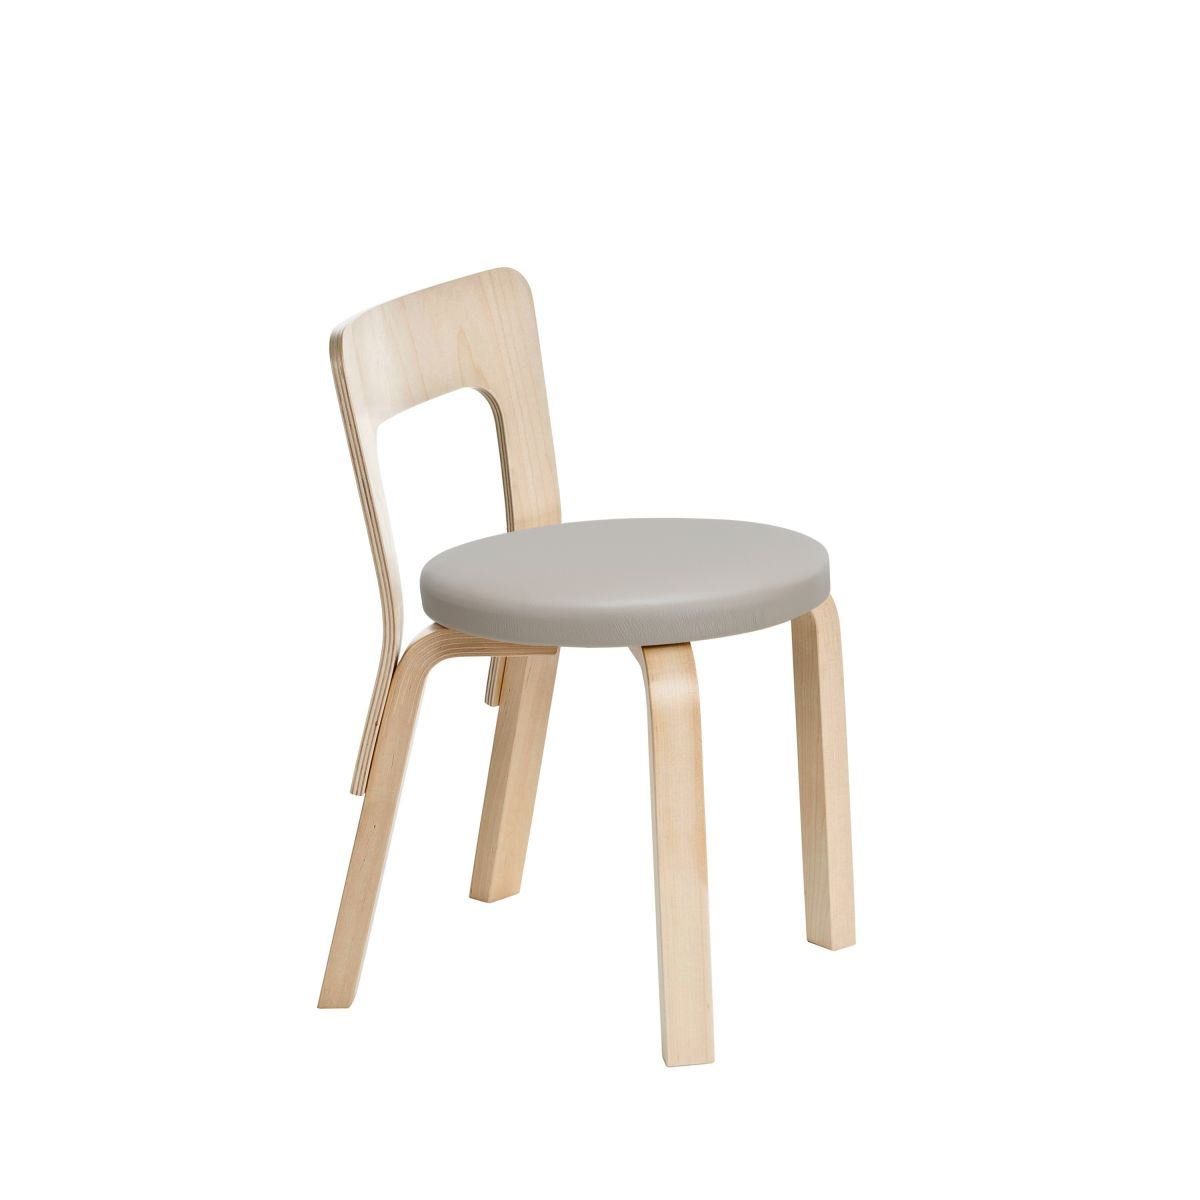 Childrens-Chair-N65-legs-birch_seat-leather-upholstery-padding_F-2912714